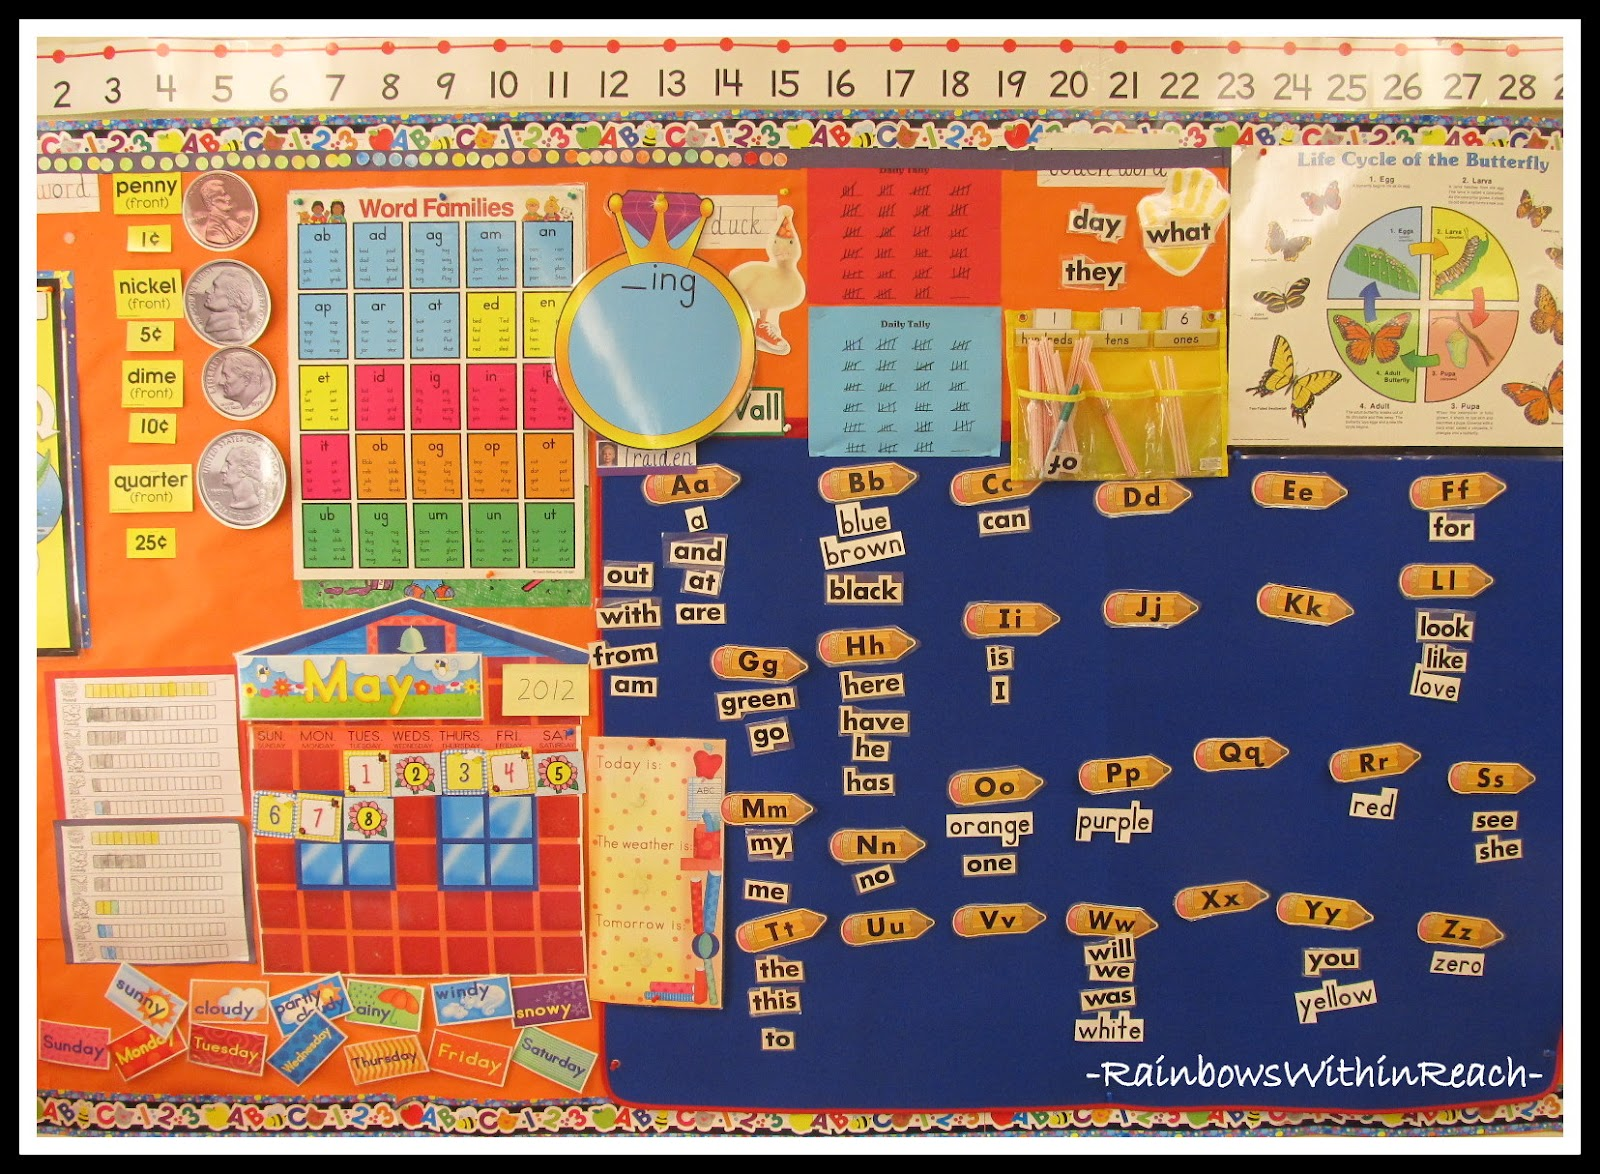 Kindergarten Calendar Wall : Rainbowswithinreach spot